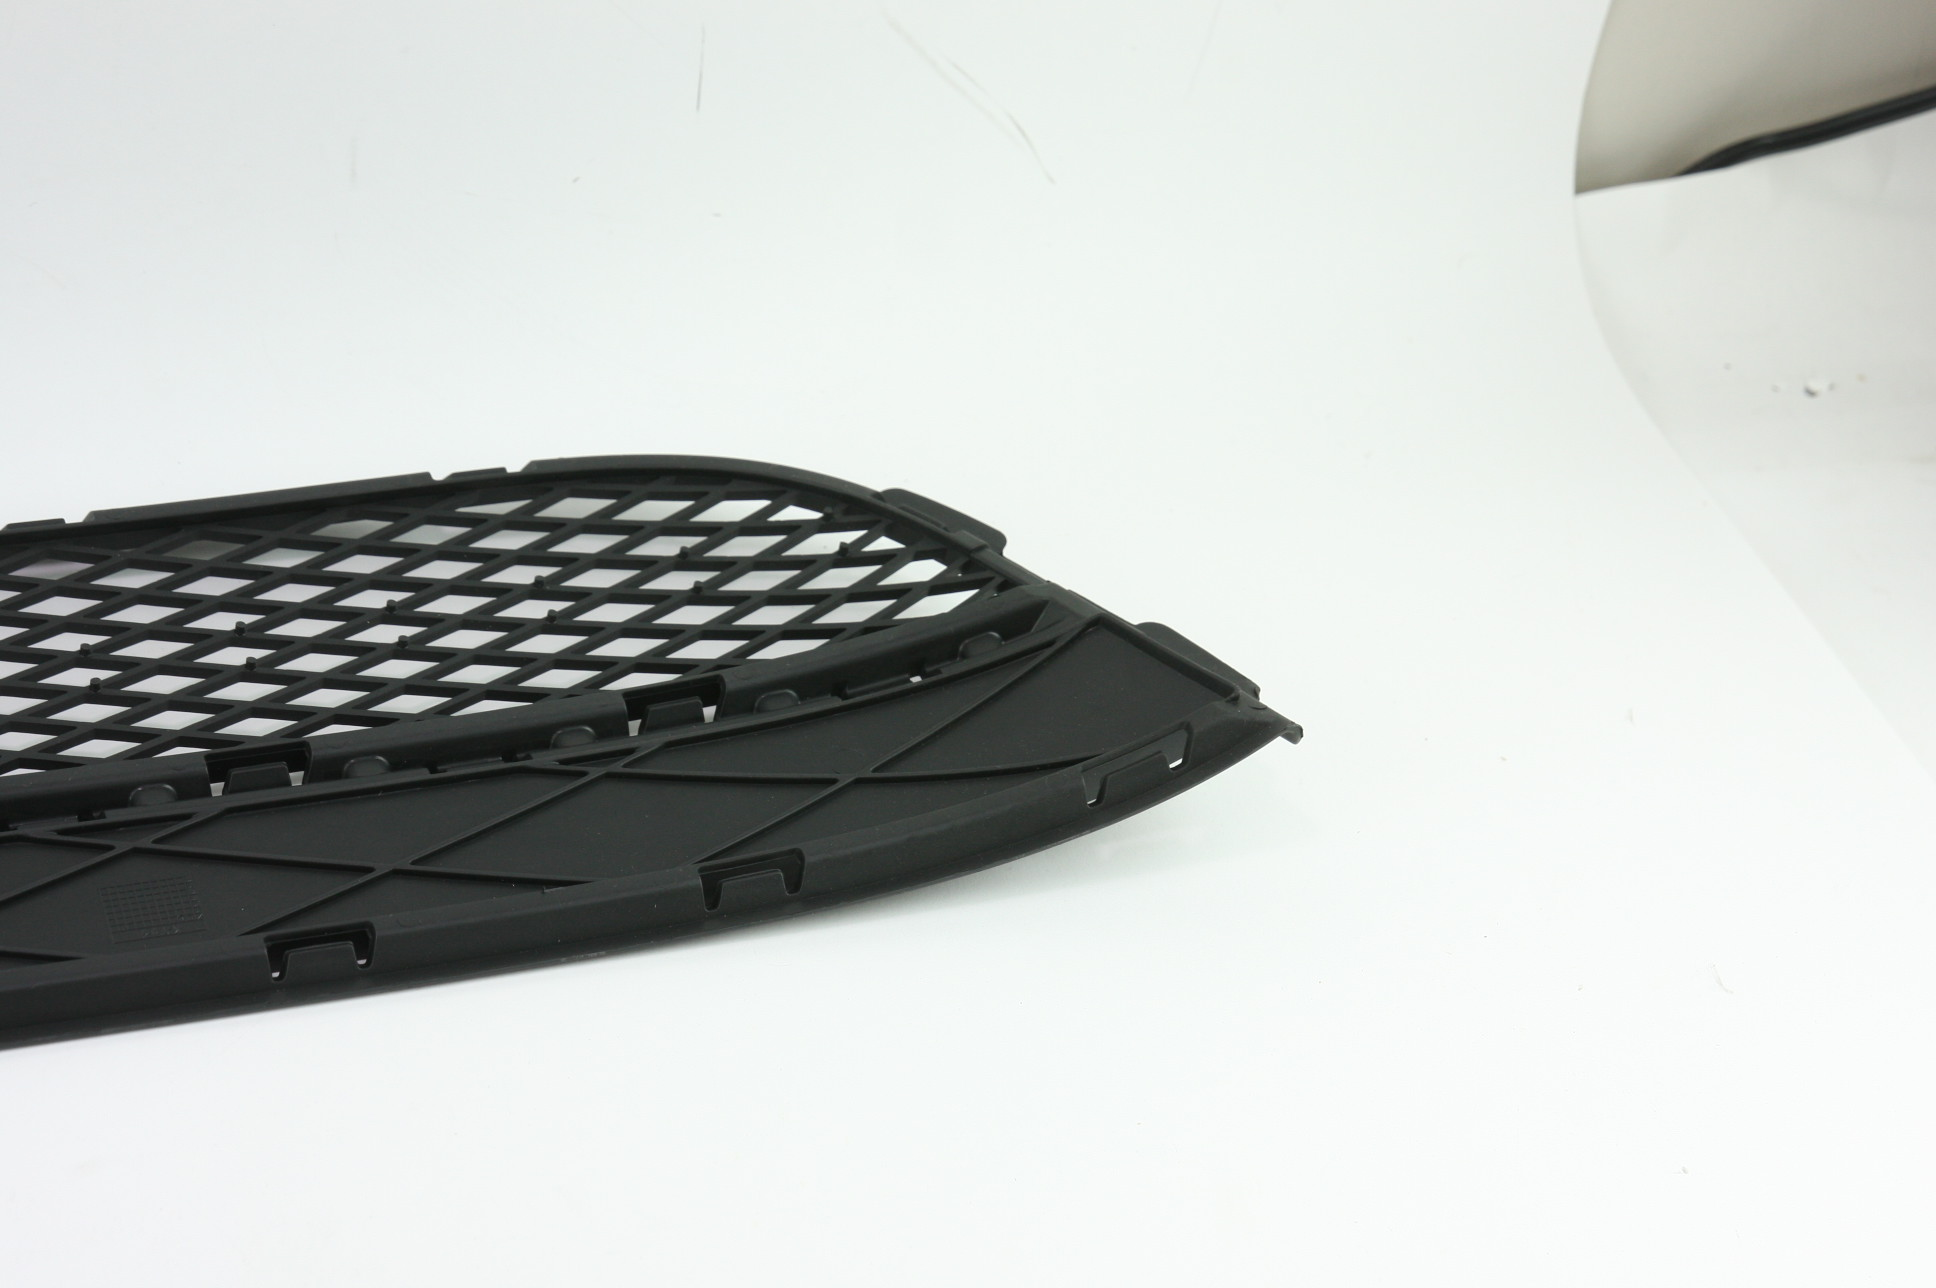 New OEM 5N08536779B9 Volkswagen VW Tiguan Front Bumper Lower Bottom Grille Grill - image 9